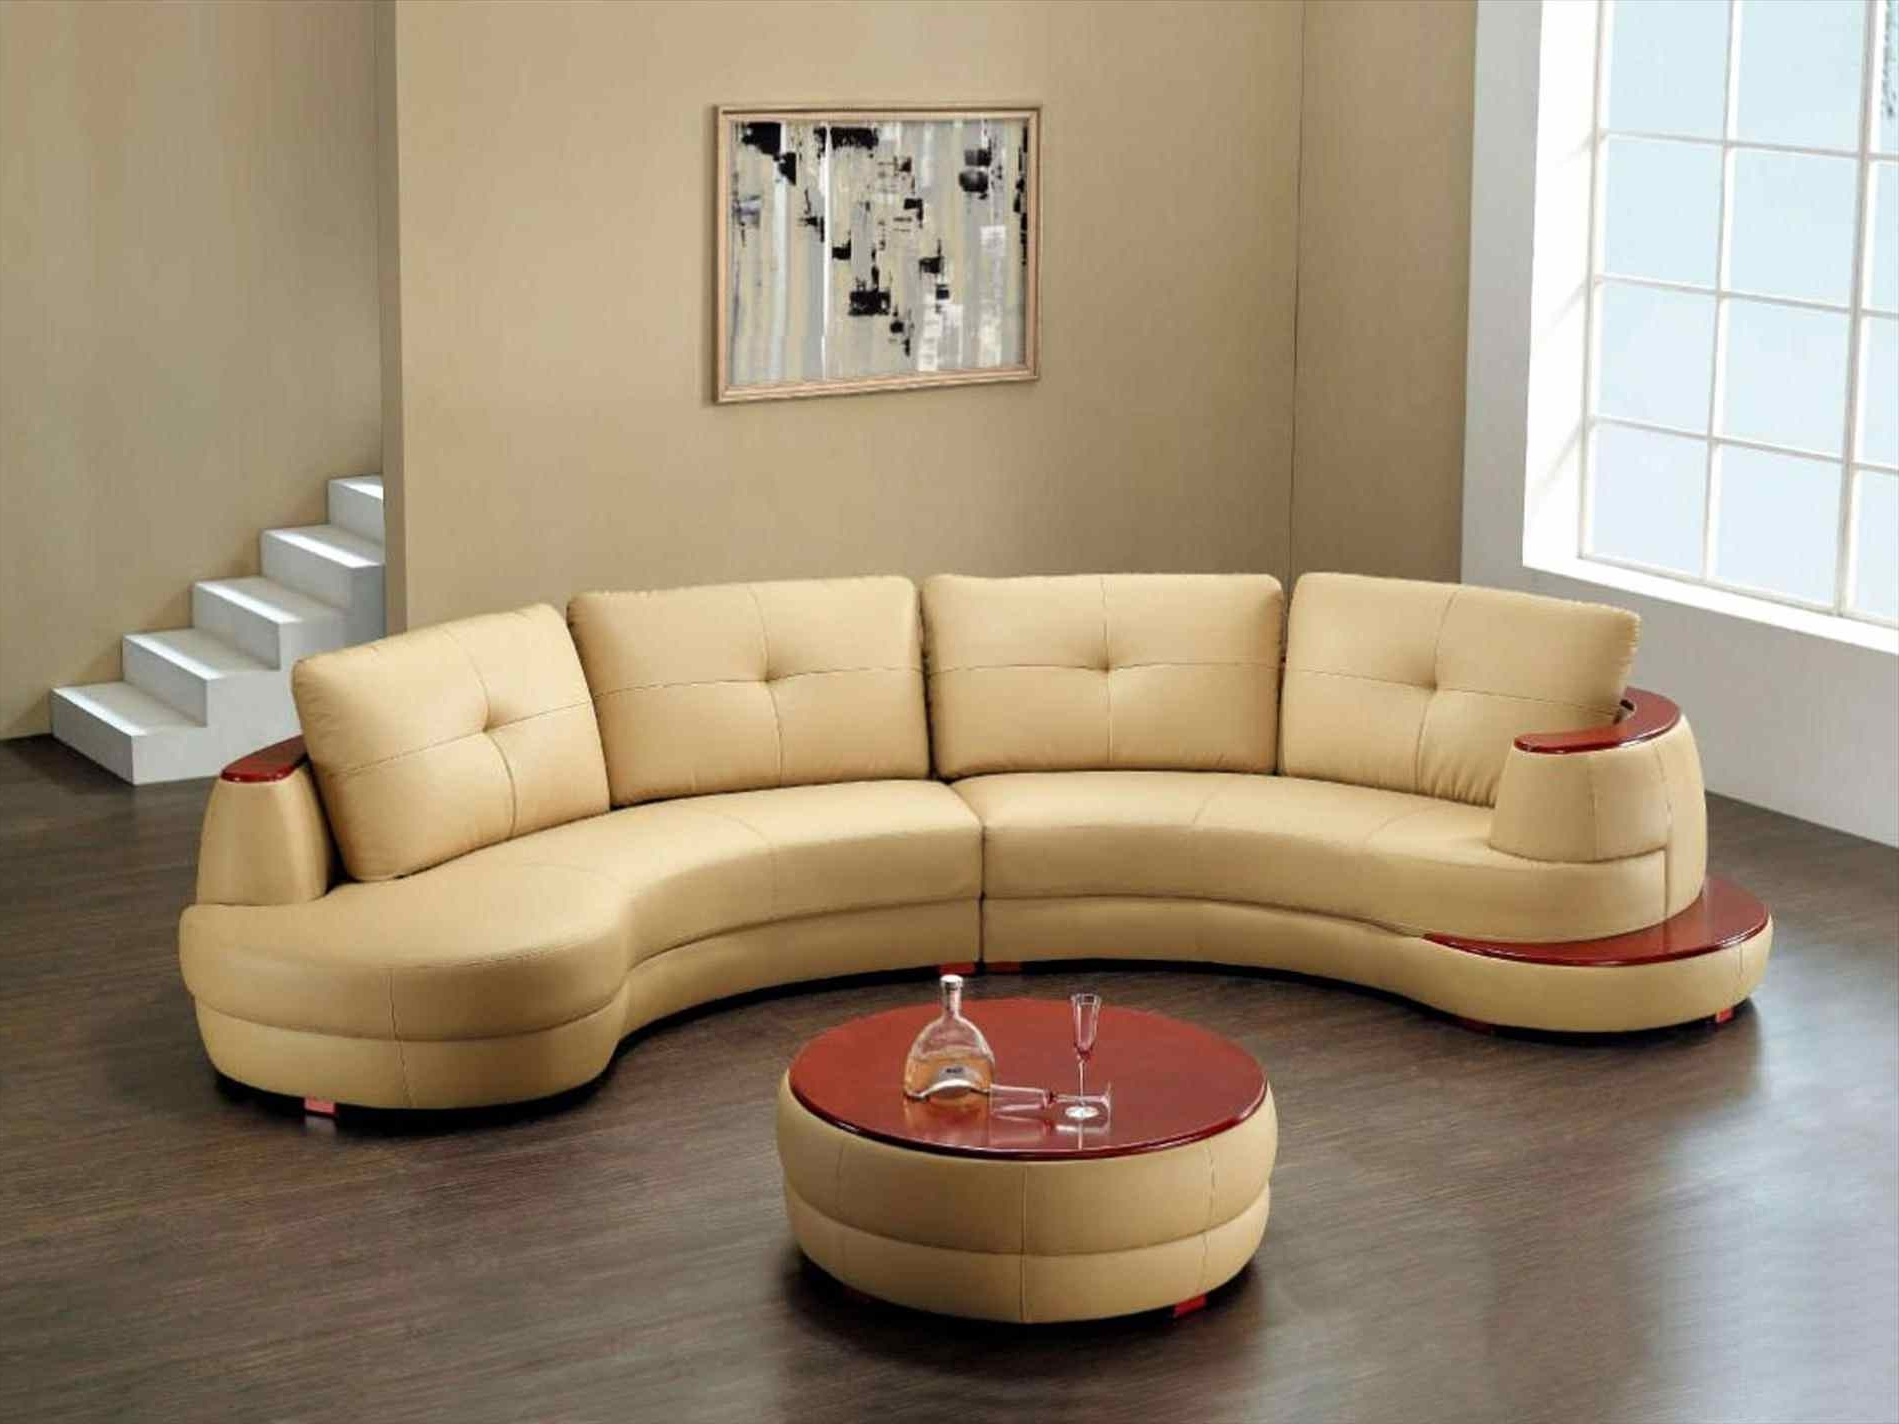 Customized Sofas Inside Widely Used Couch : Uae Call Settees Sofa Small Circle Couch Customized Sofas (View 4 of 20)